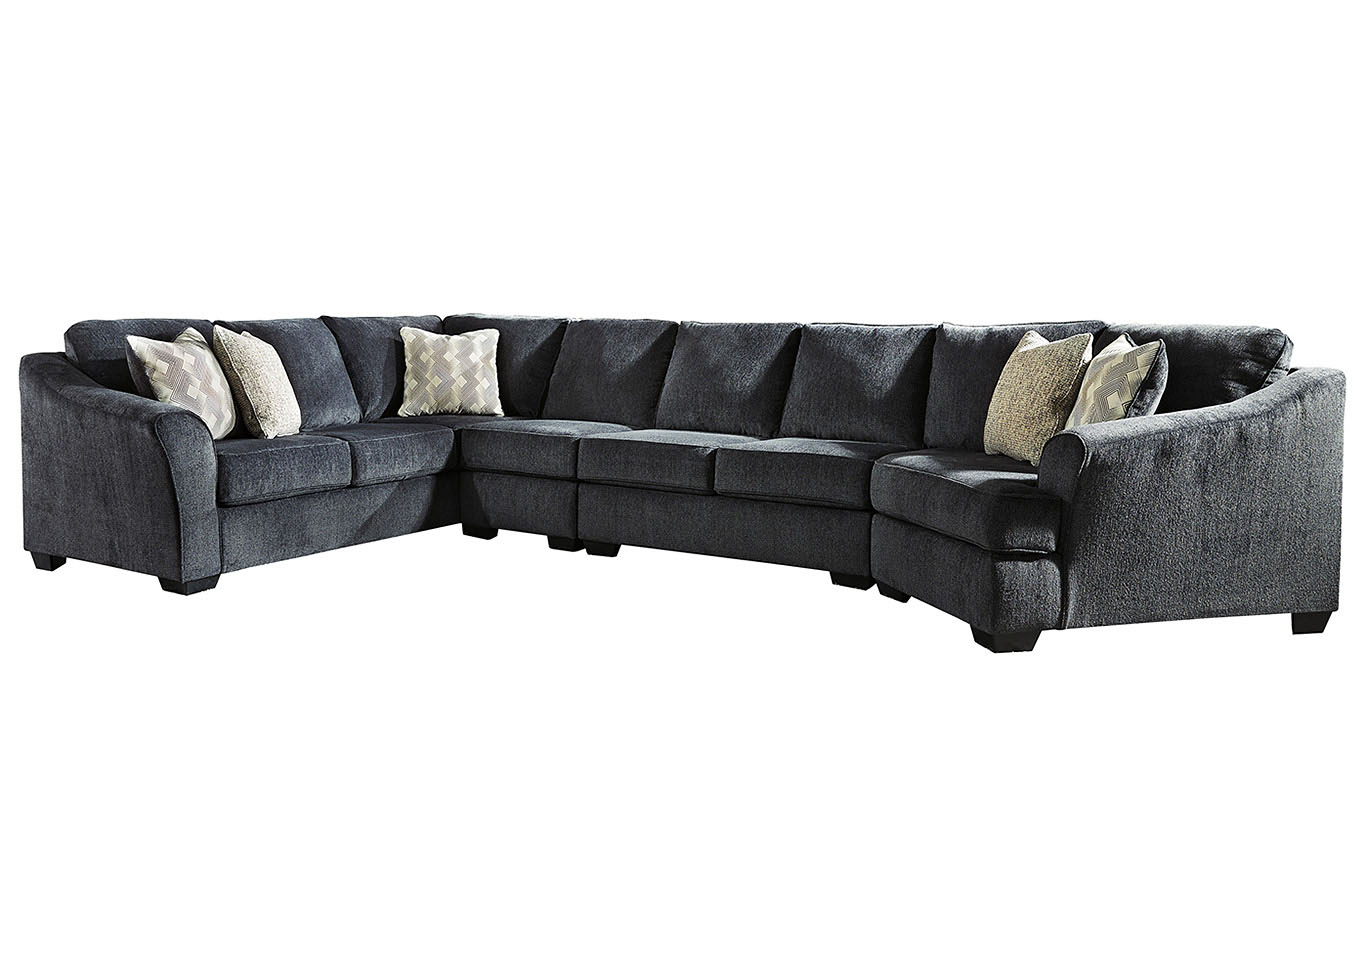 Eltmann Slate 4 Piece Sectional w/RAF Cuddler,Signature Design By Ashley